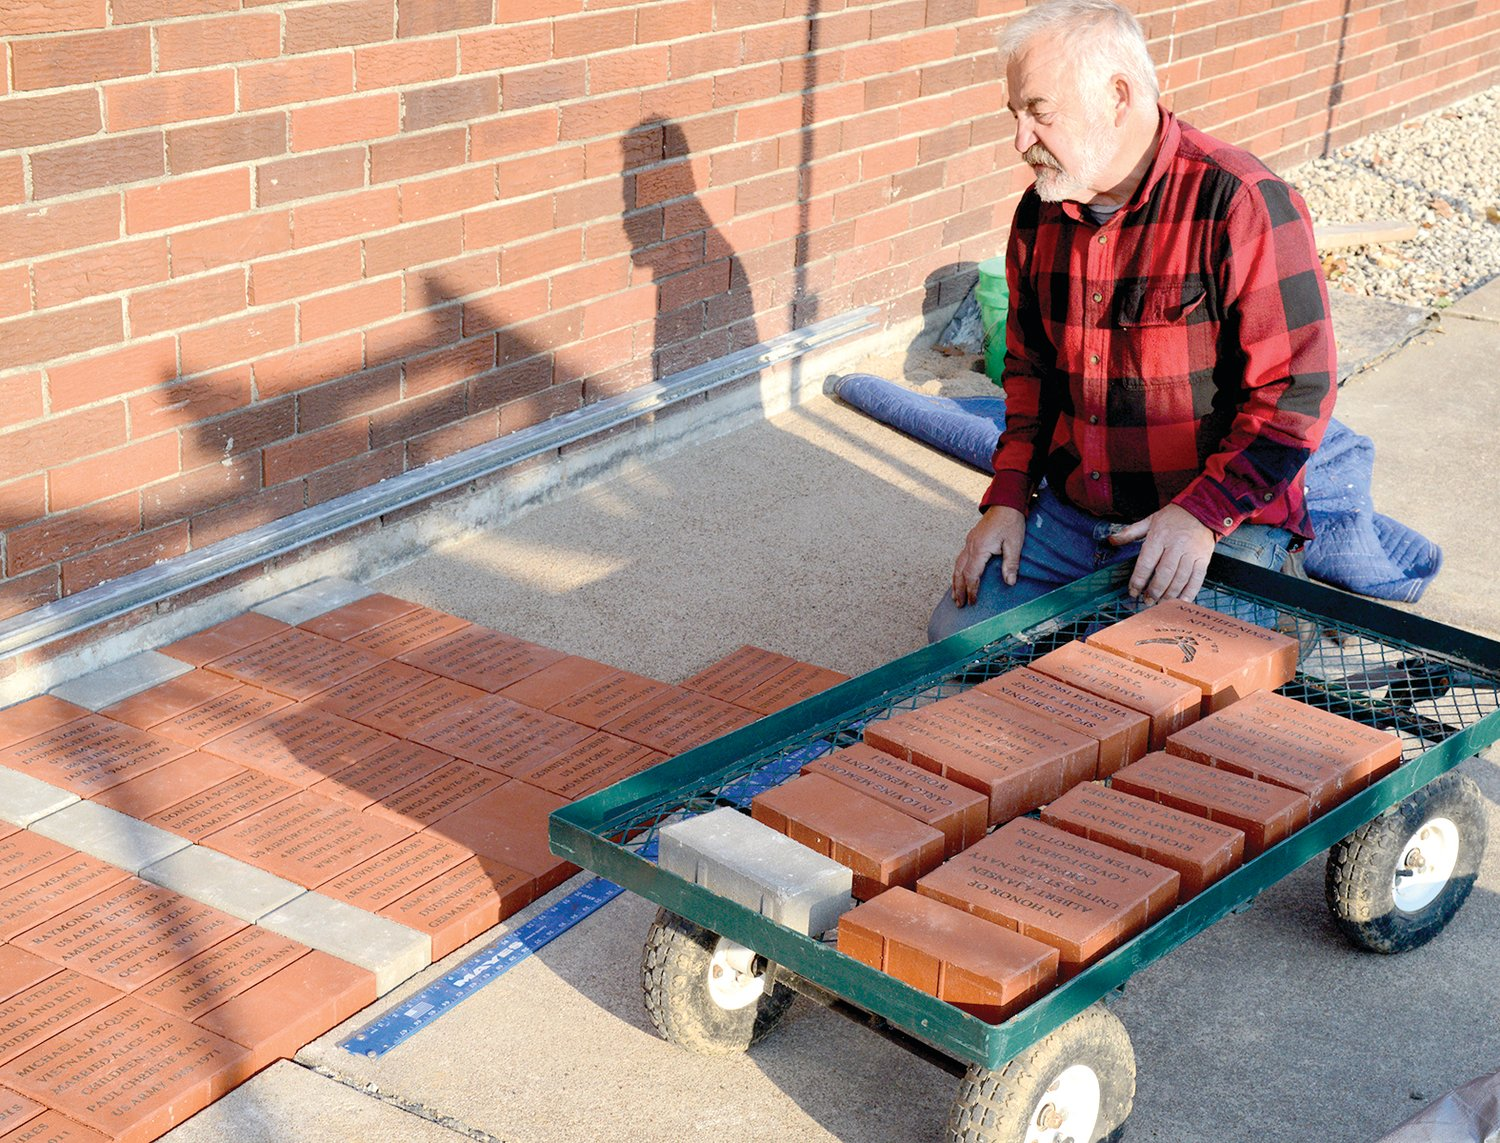 ike Jacquin led the project to install 102 engraved bricks at the VFW Hall in Linn.